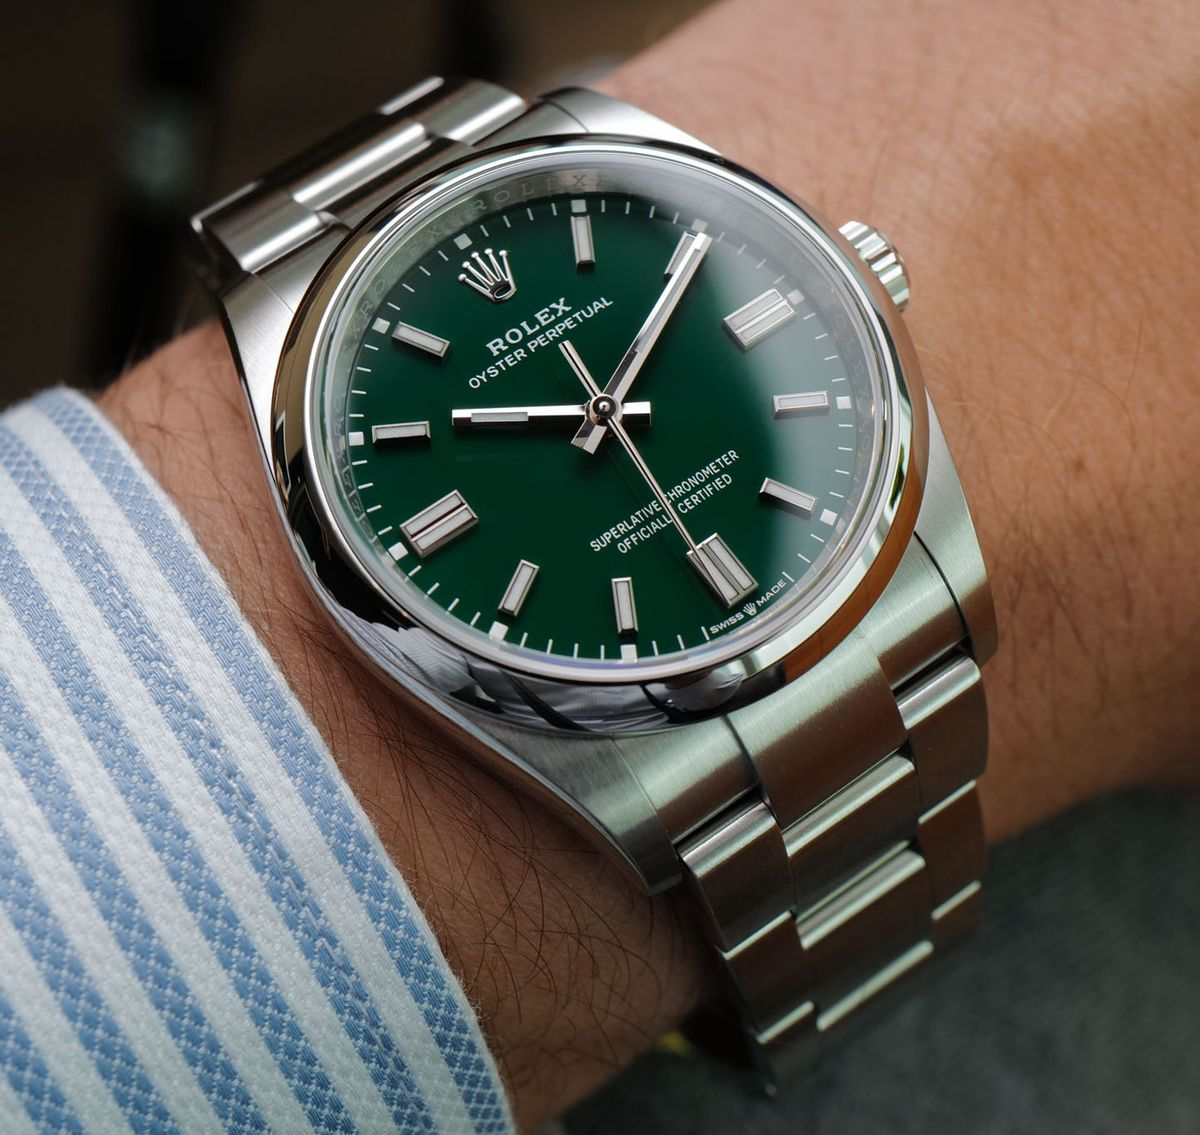 Rolex Oyster Perpetual 36mm 126000 Green Dial